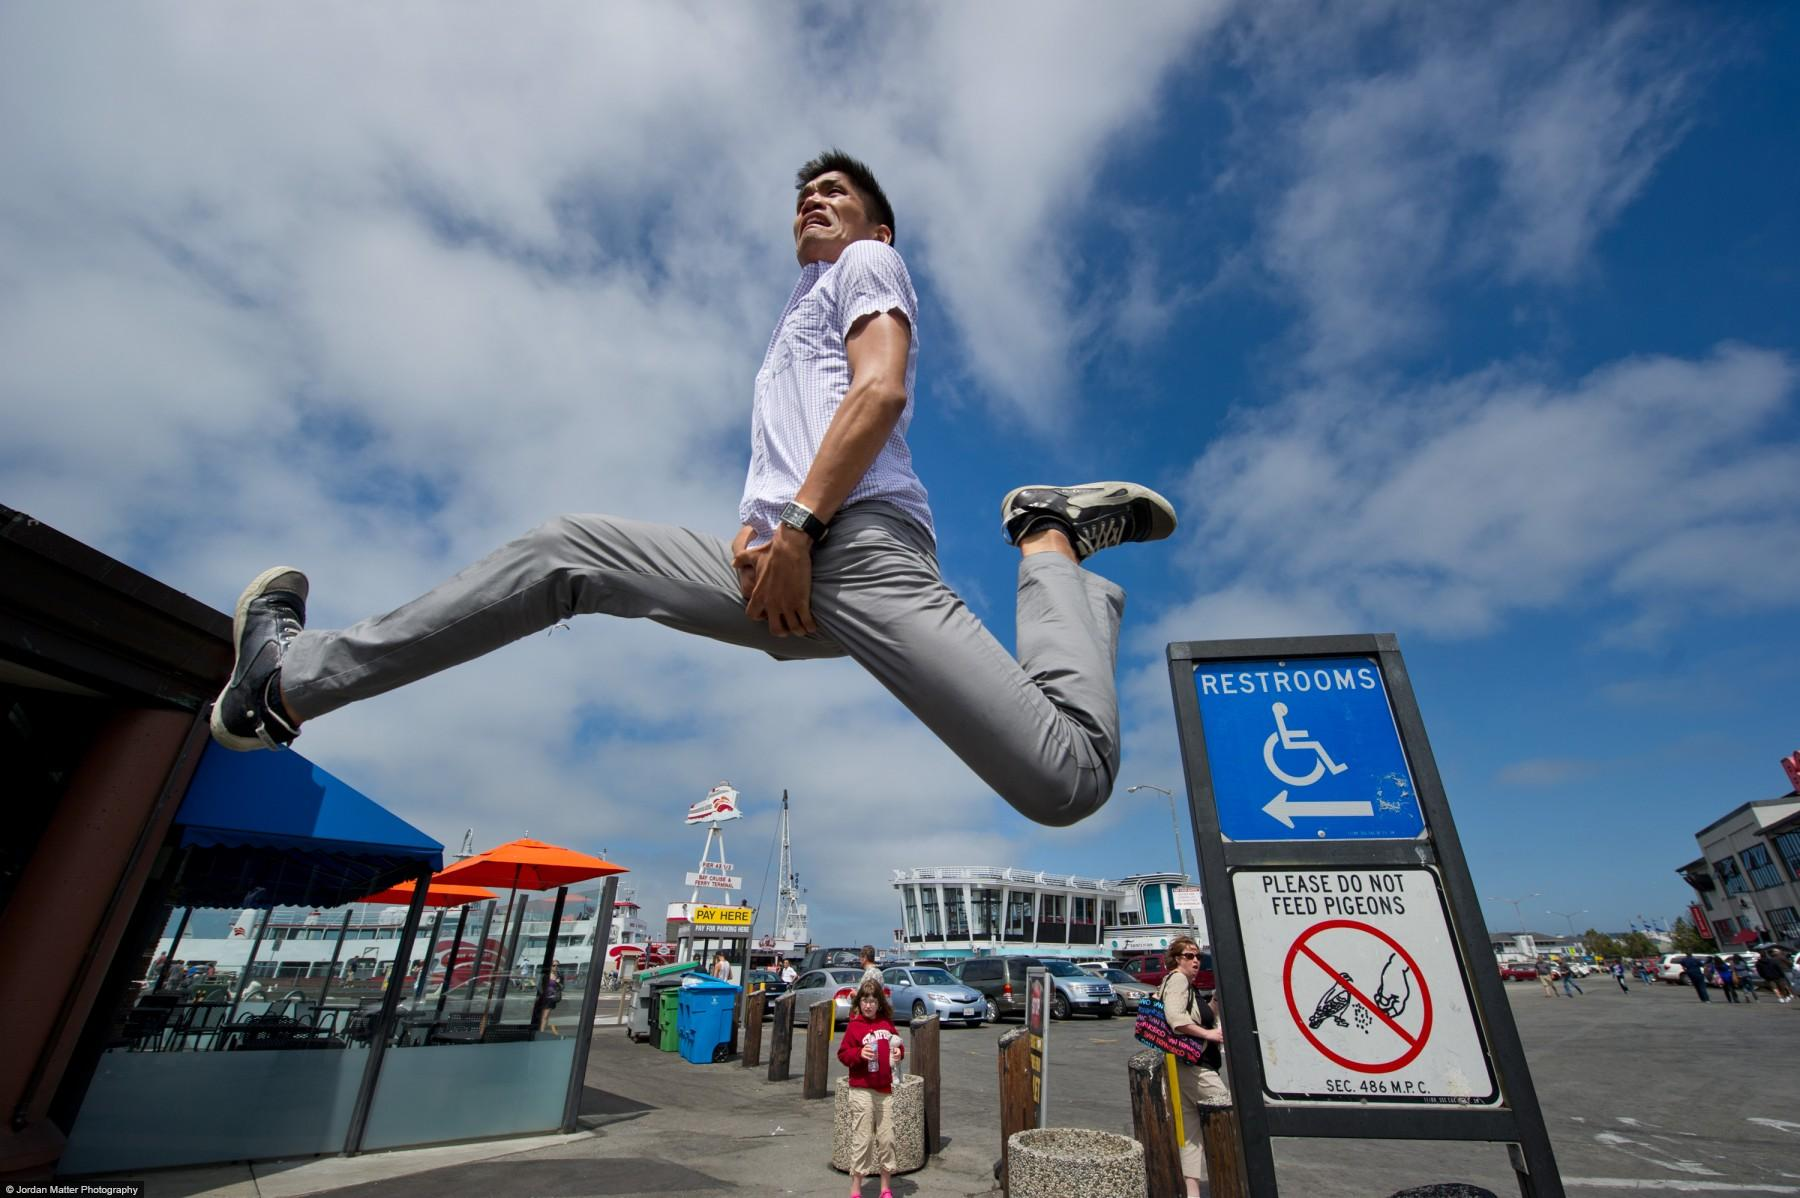 Dancers-Among-Us-in-San-Francisco-Dudley-Flores